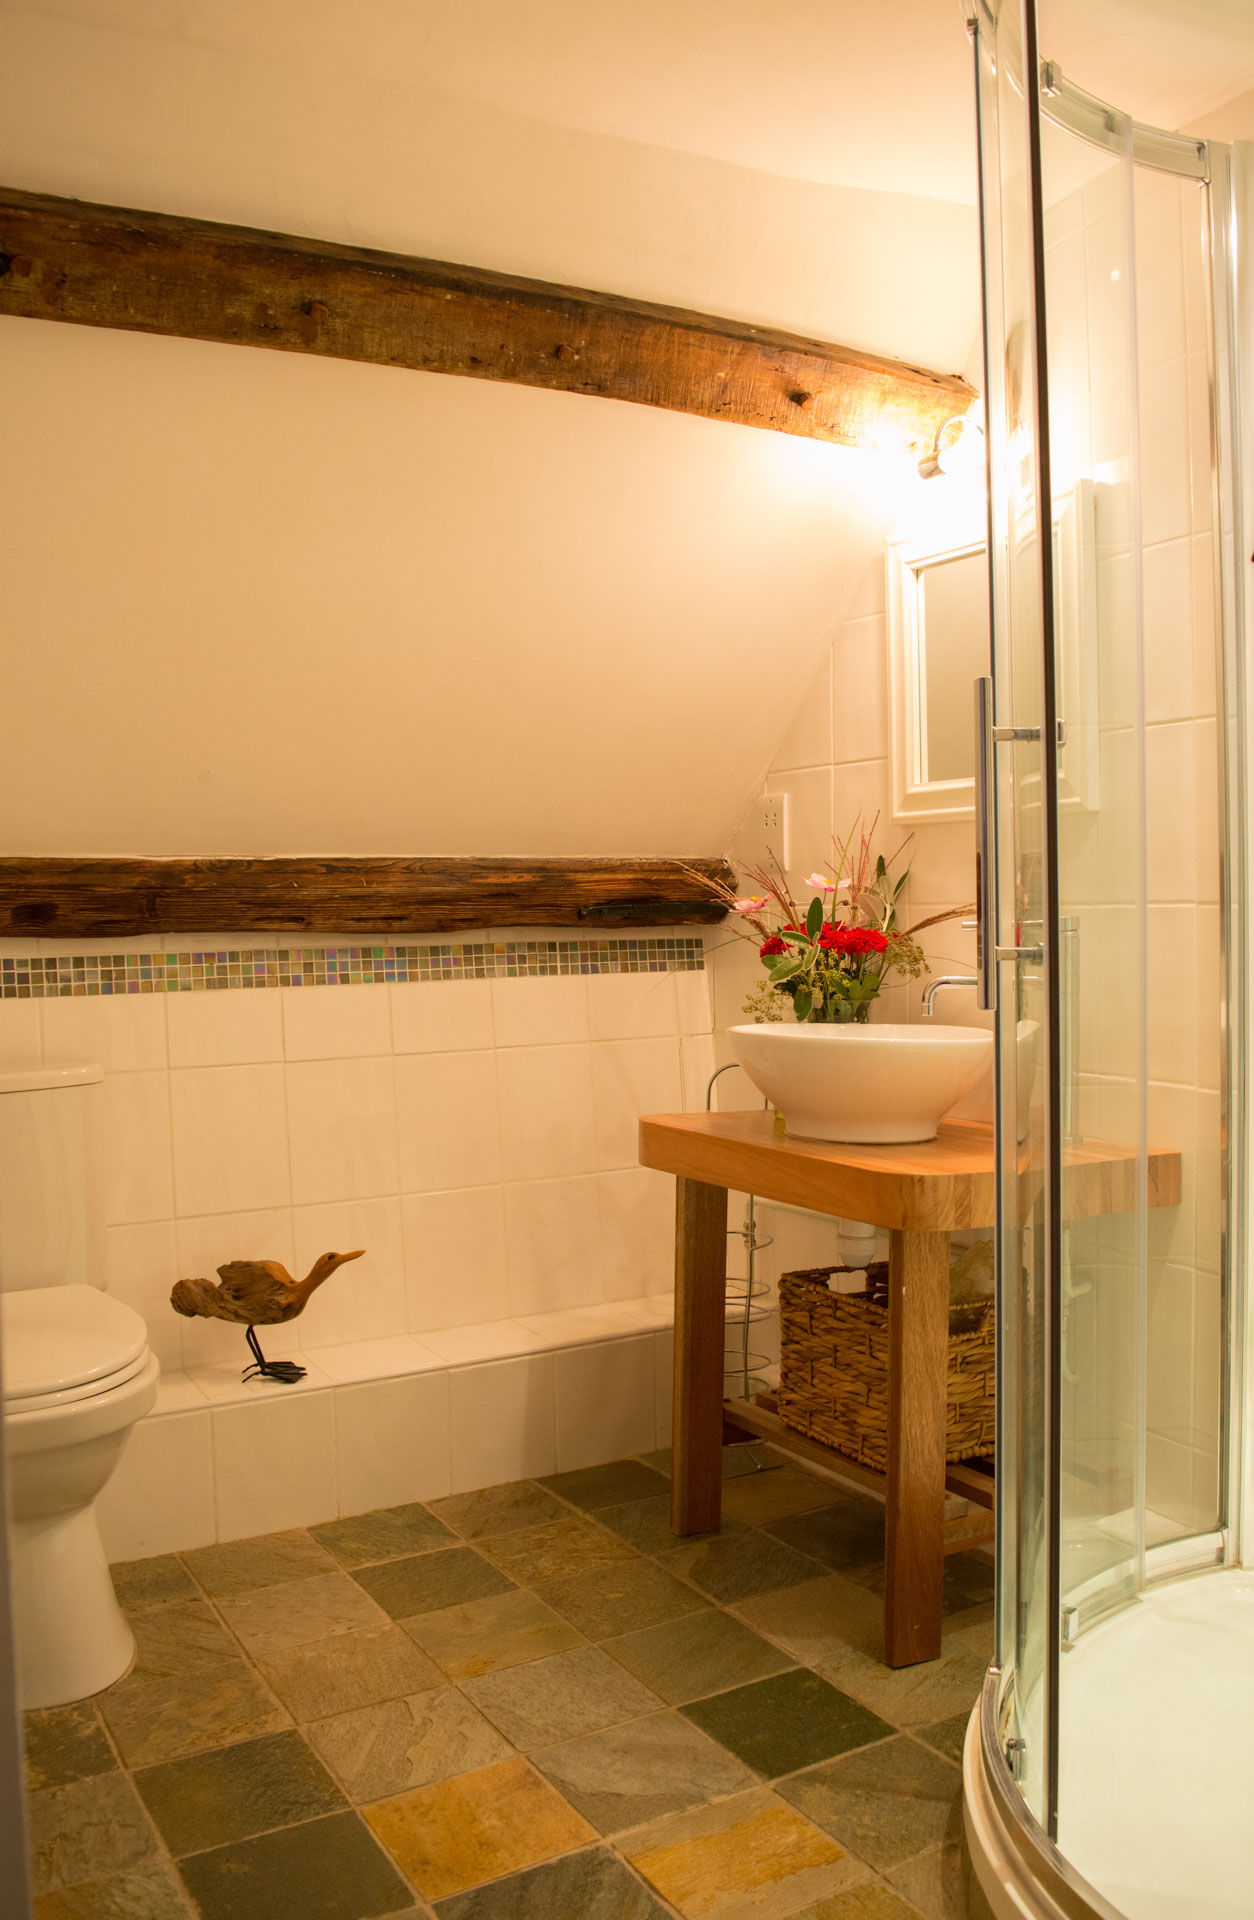 Bathroom with toilet and stand in shower cubicle.